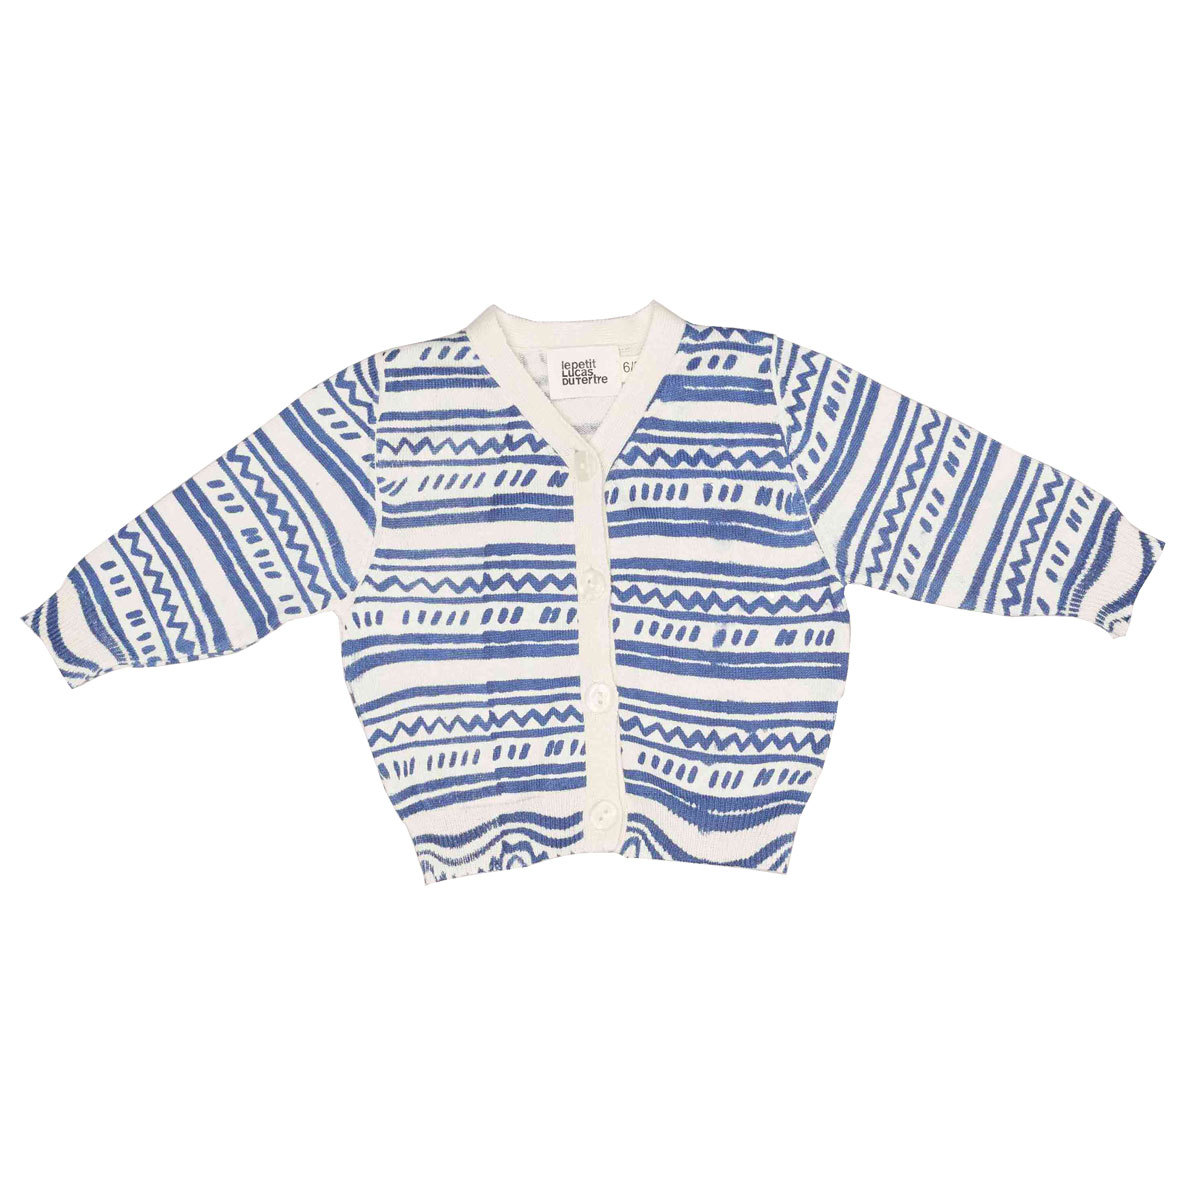 Hauts bébé Cardigan George - Matisse Stripes - 3 Ans Cardigan George - Matisse Stripes - 3 Ans